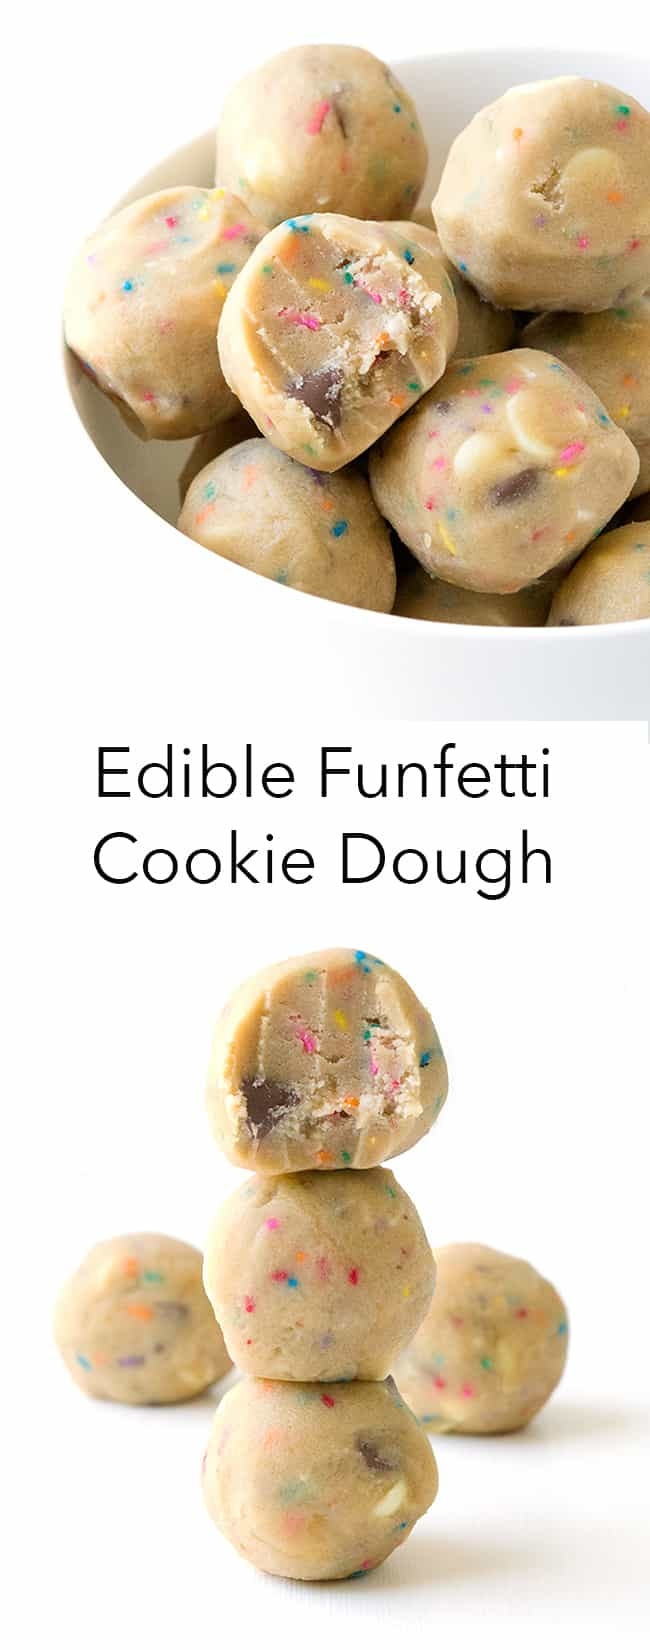 Edible Funfetti Cookie Dough | Sweetest Menu